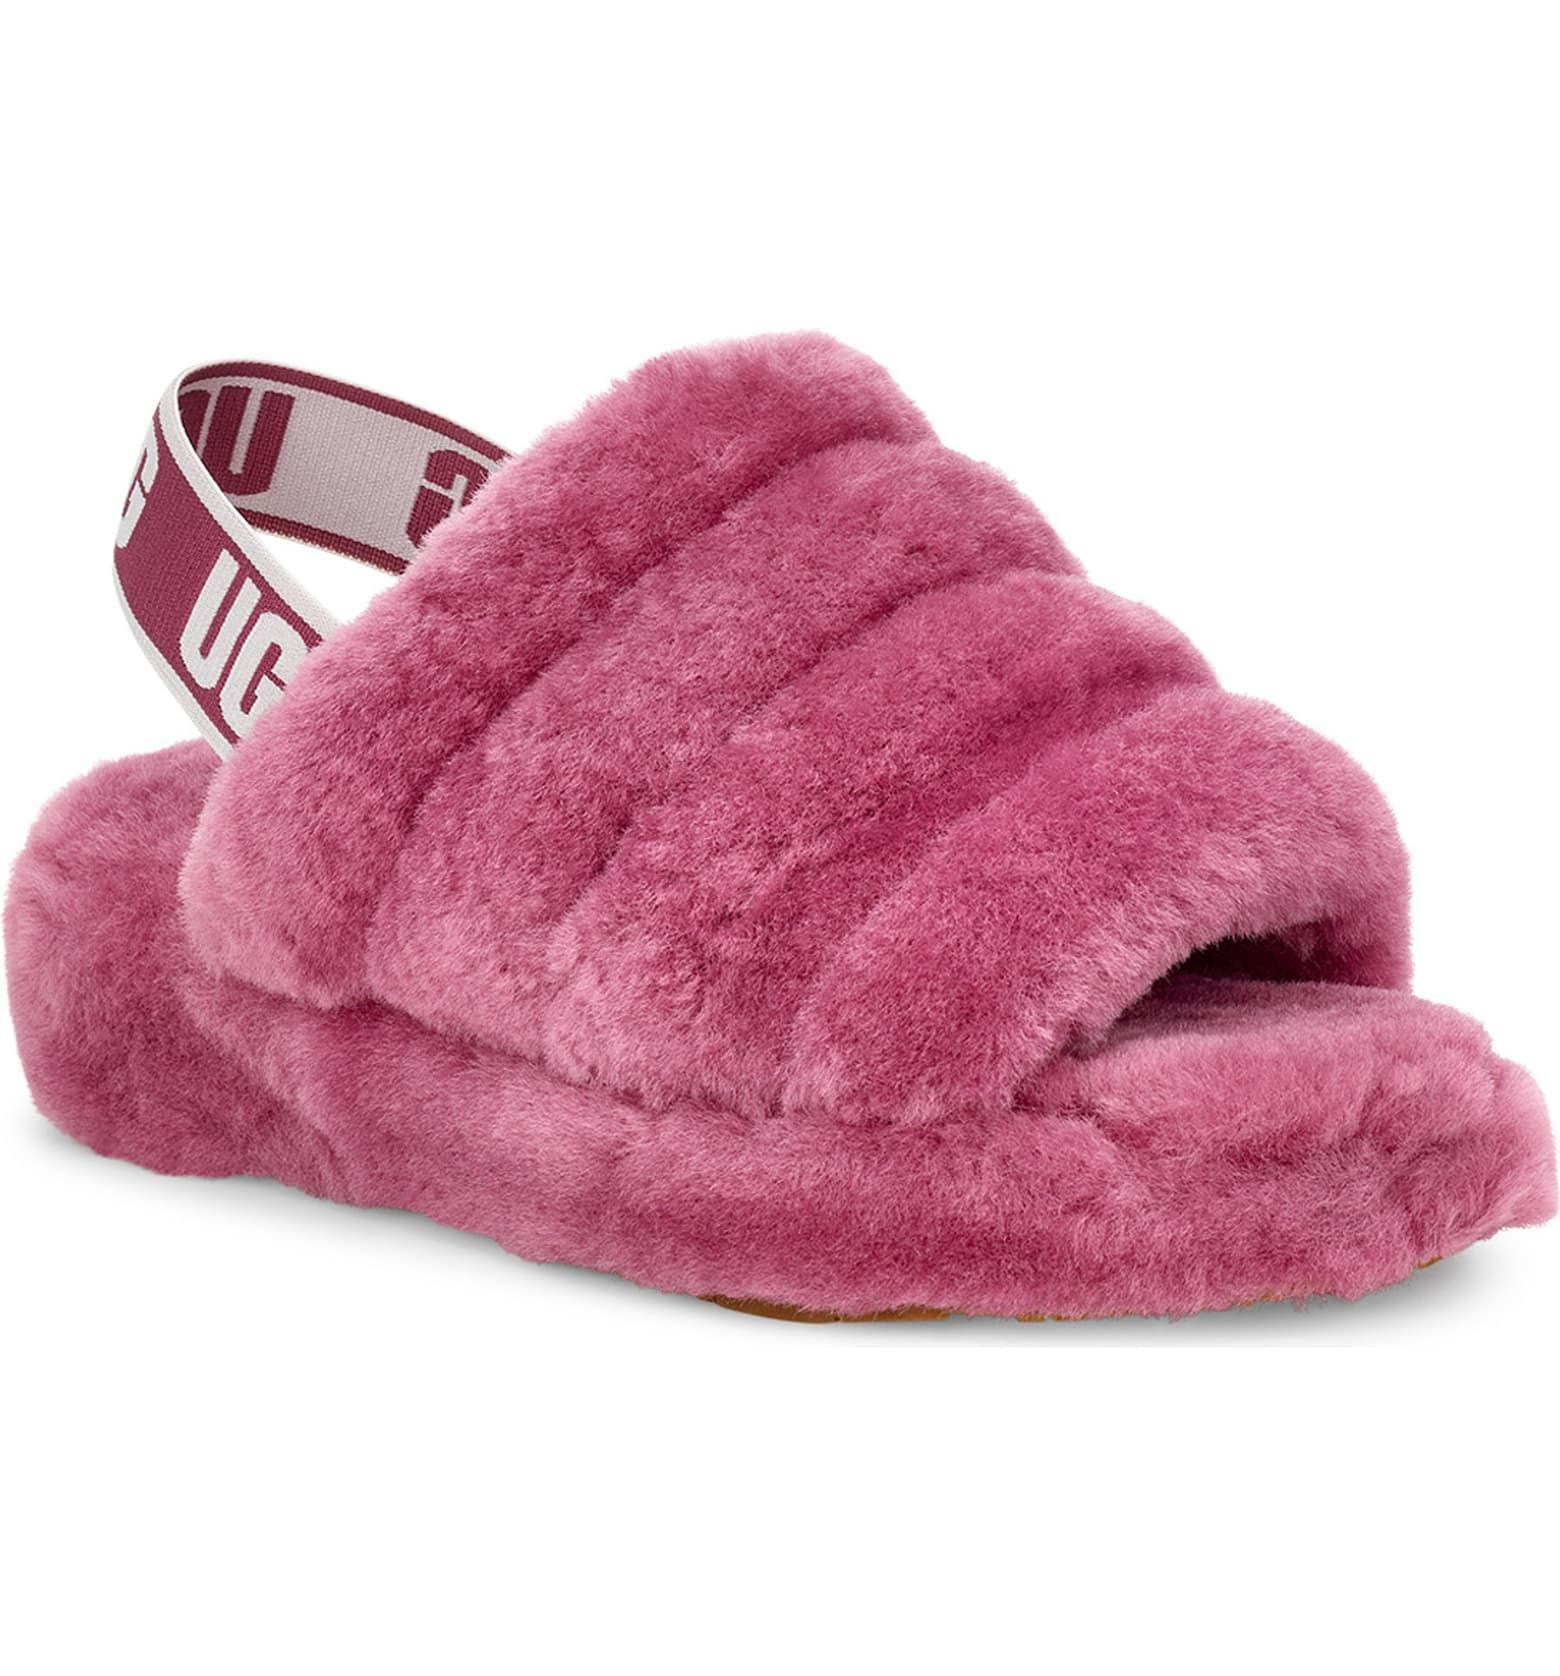 UGG Slippers Are the Best Slippers